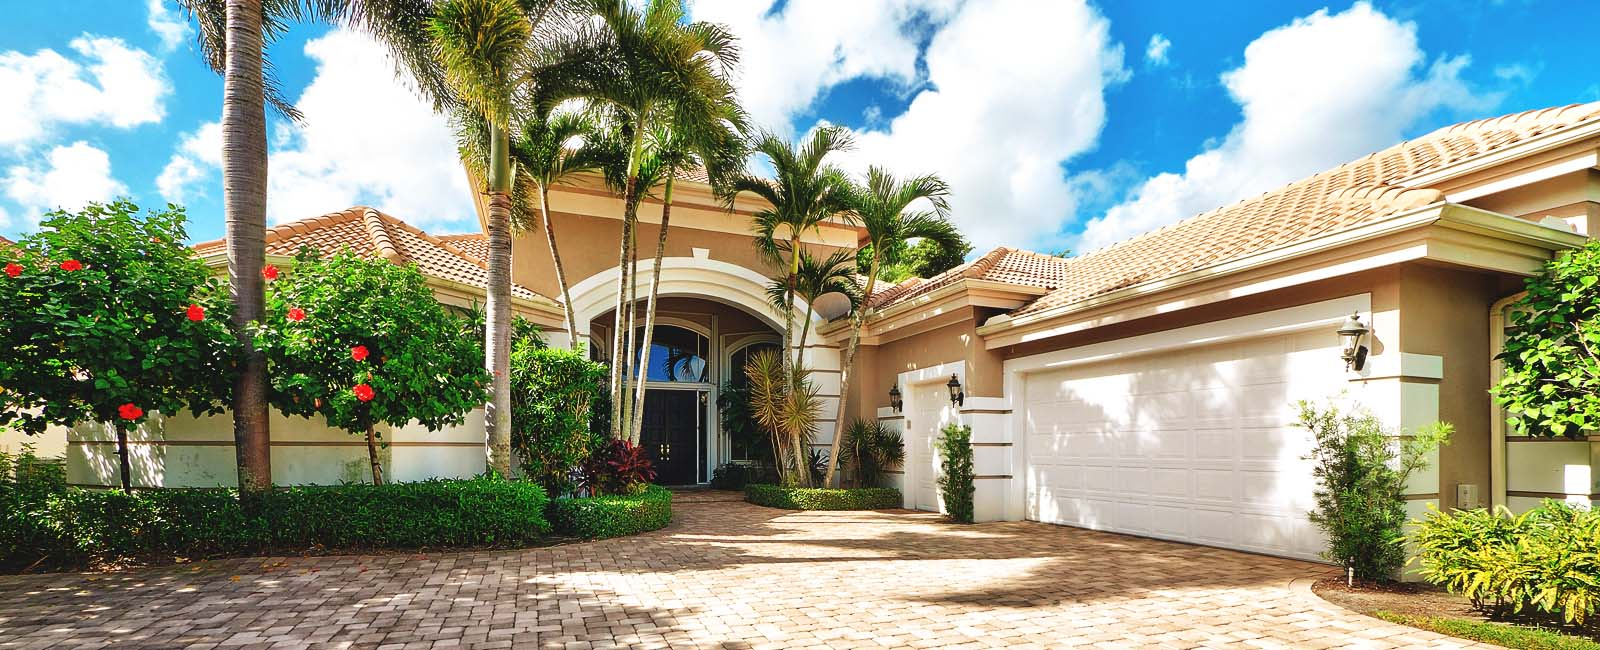 BallenIsles and Palm Beach Gardens Real Estate The Weisberg Group